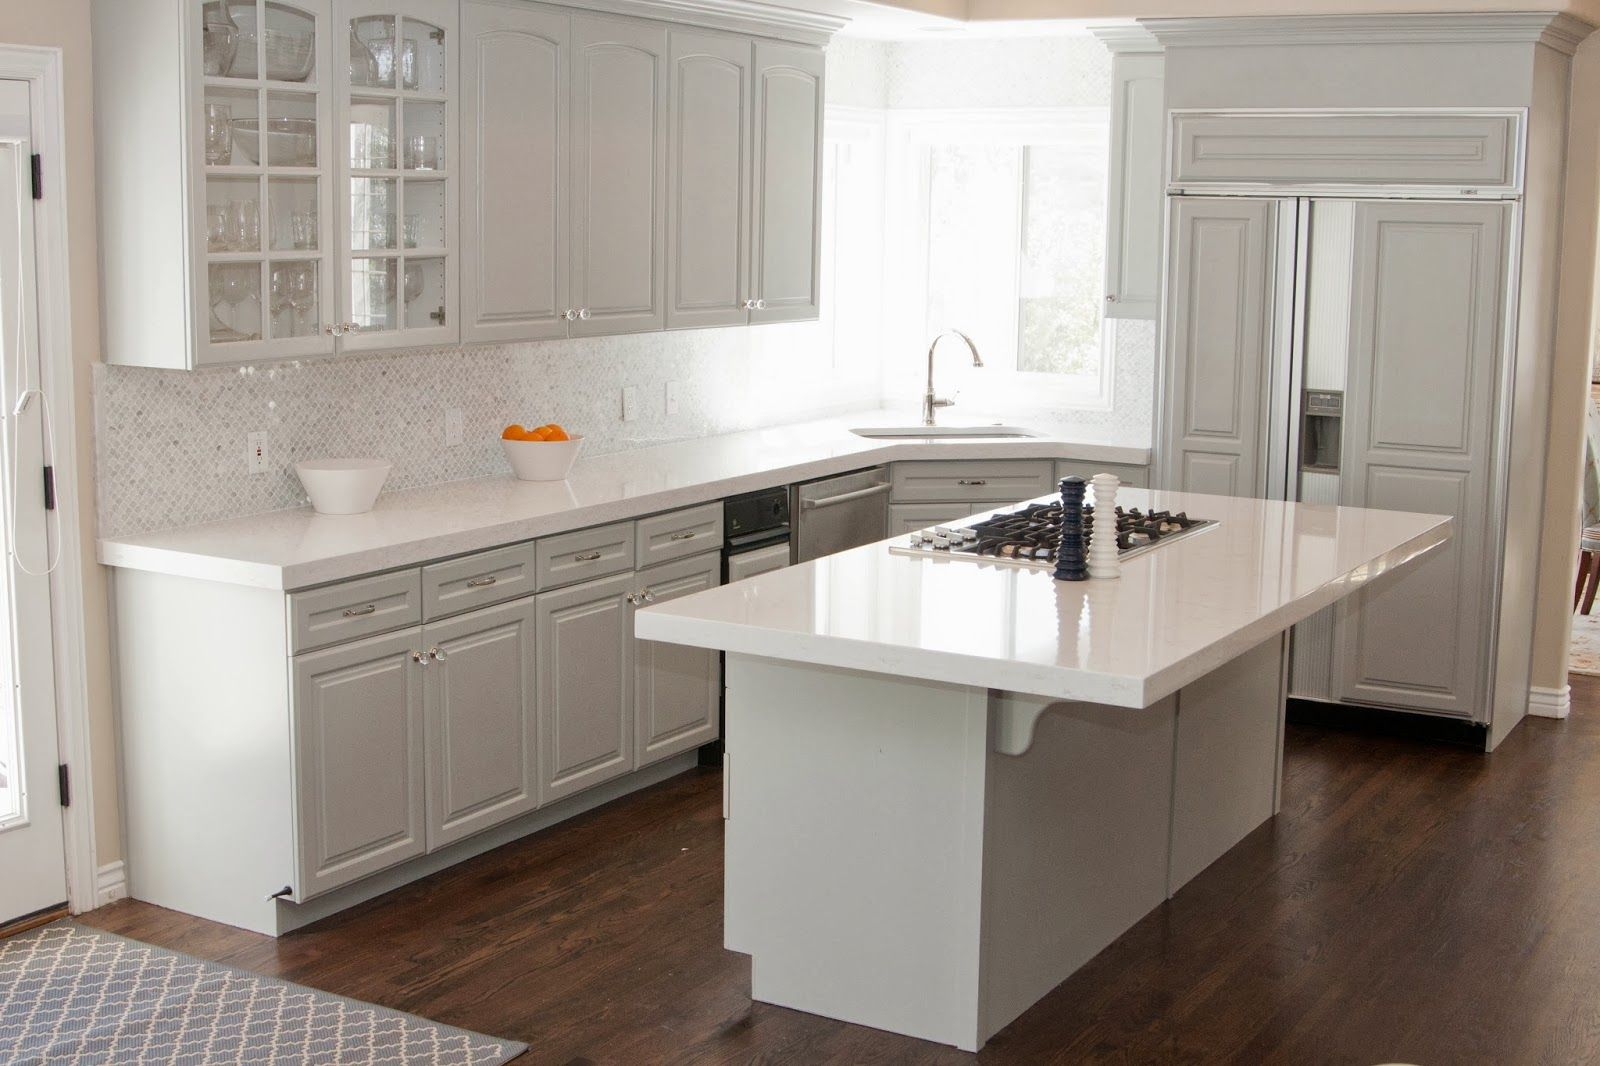 Countertop ideas for white cabinets google search for Kitchen designs with white cabinets